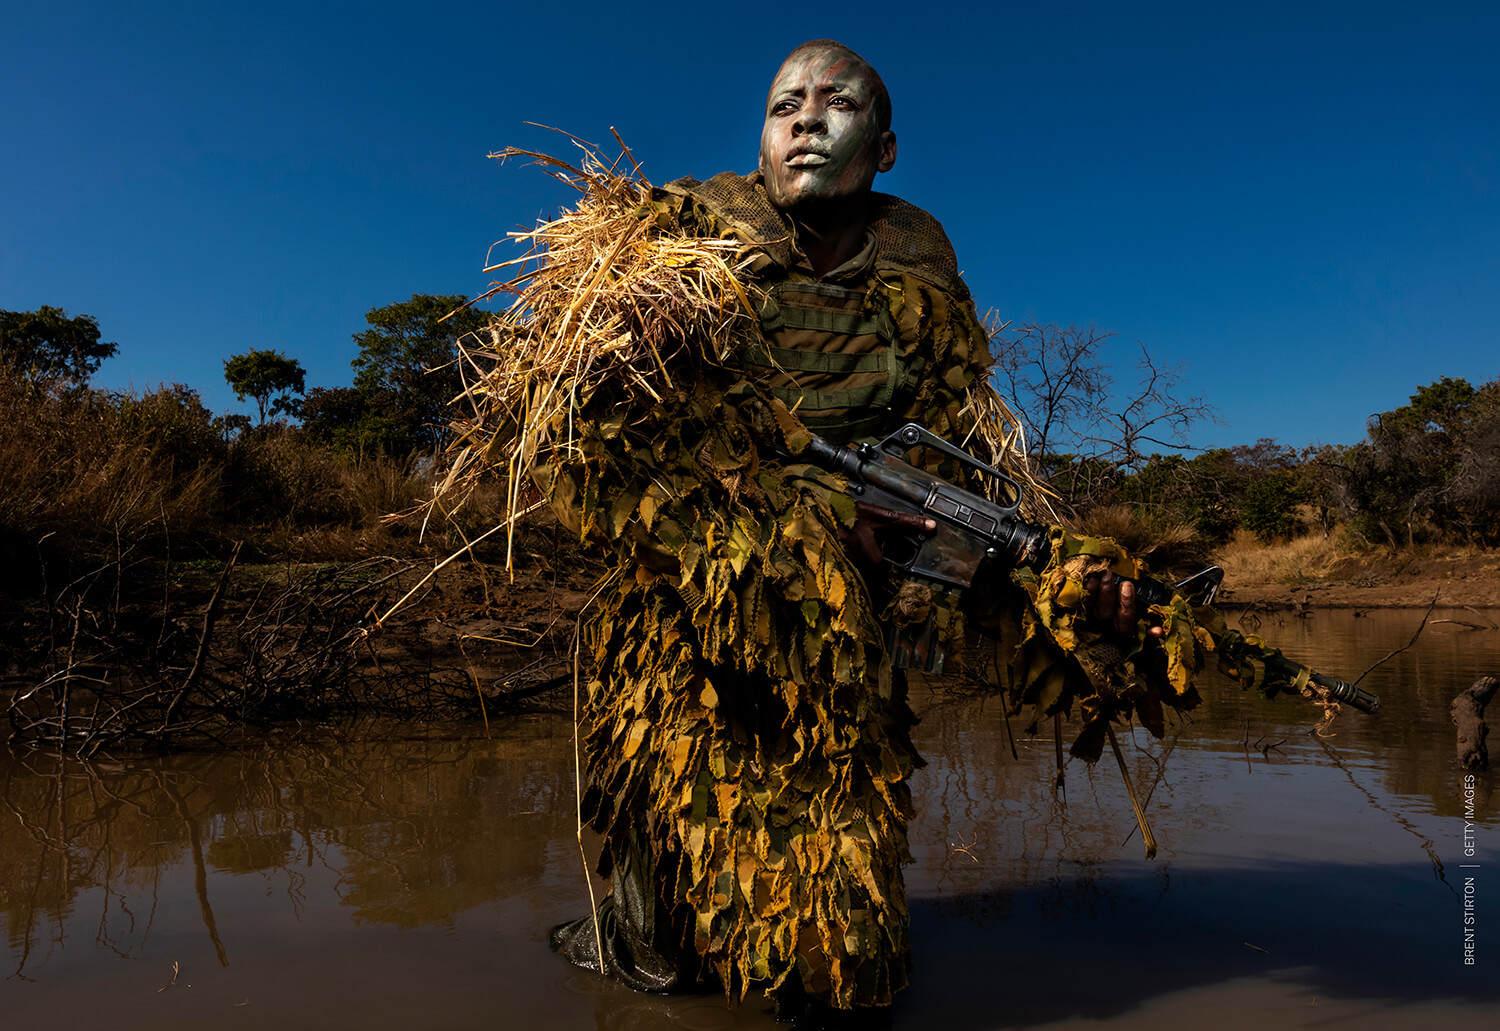 006 Brent Stirton Getty Images